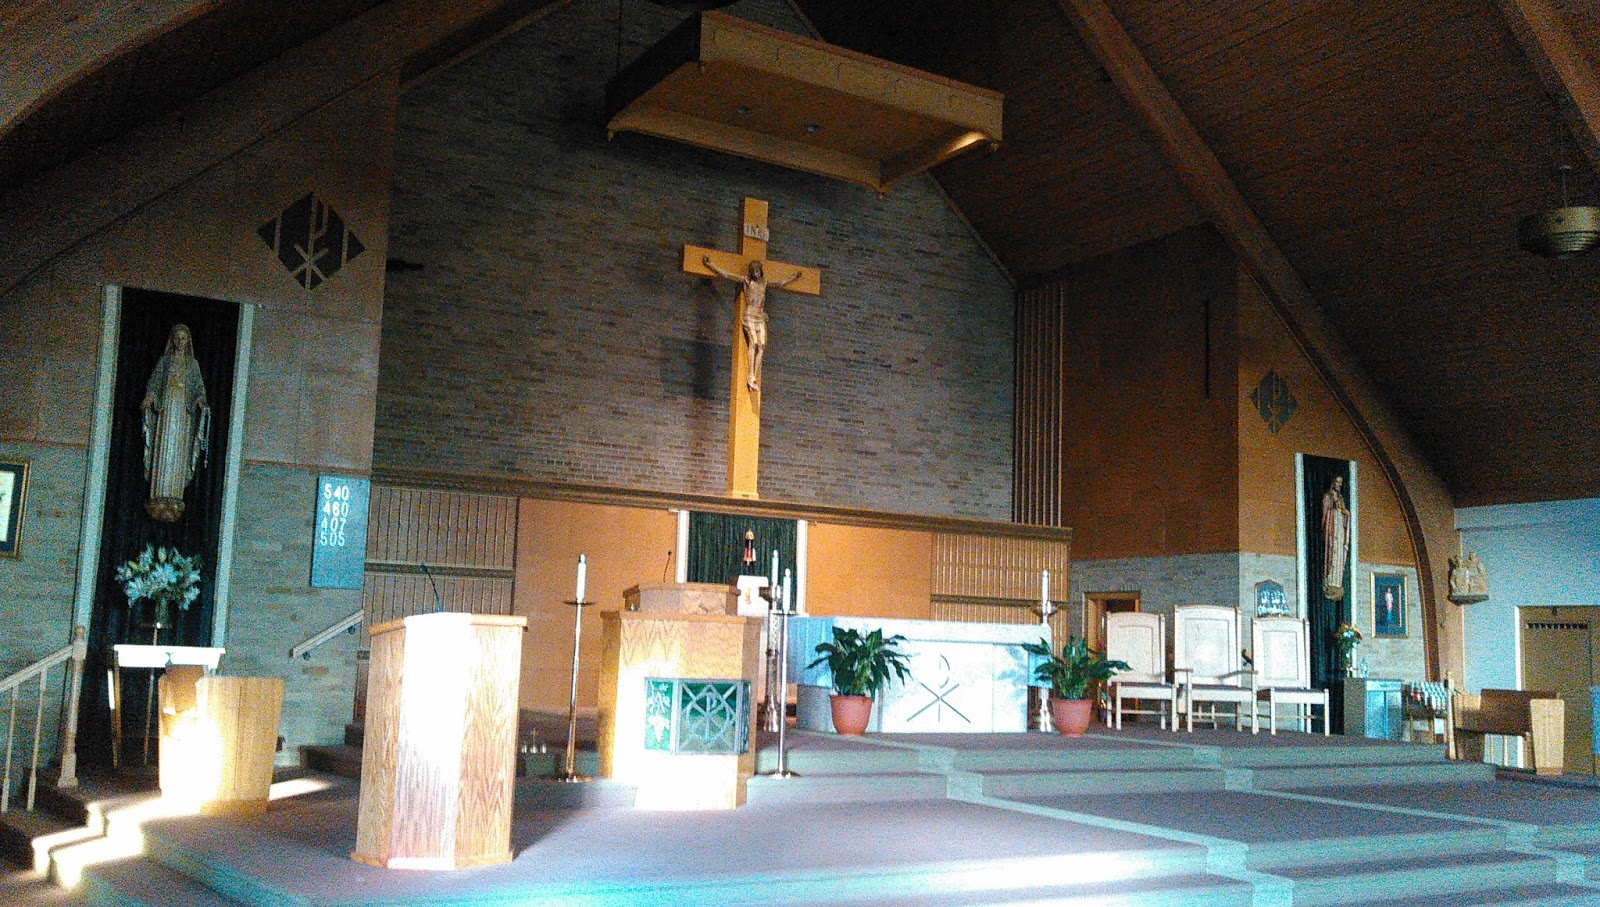 St. Valentine Parish Was Established In 1950, One Church In What Would  Become Of A Group Of Four Catholic Churches That Lined Beech Daly Rd. In  Redford ...